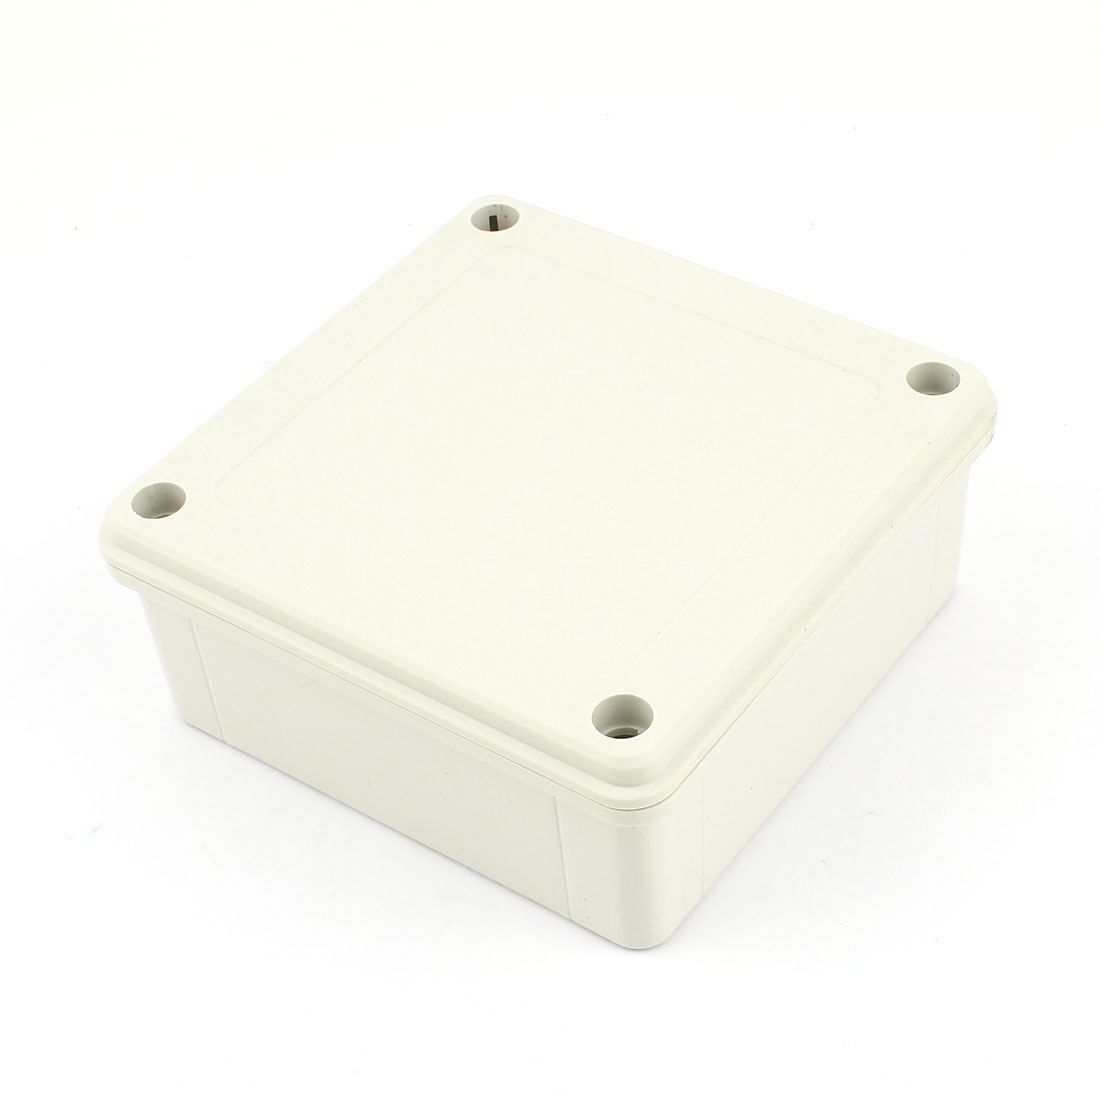 145mm x 145mm x 60mm Waterproof Plastic DIY Junction Box Power Protection Case